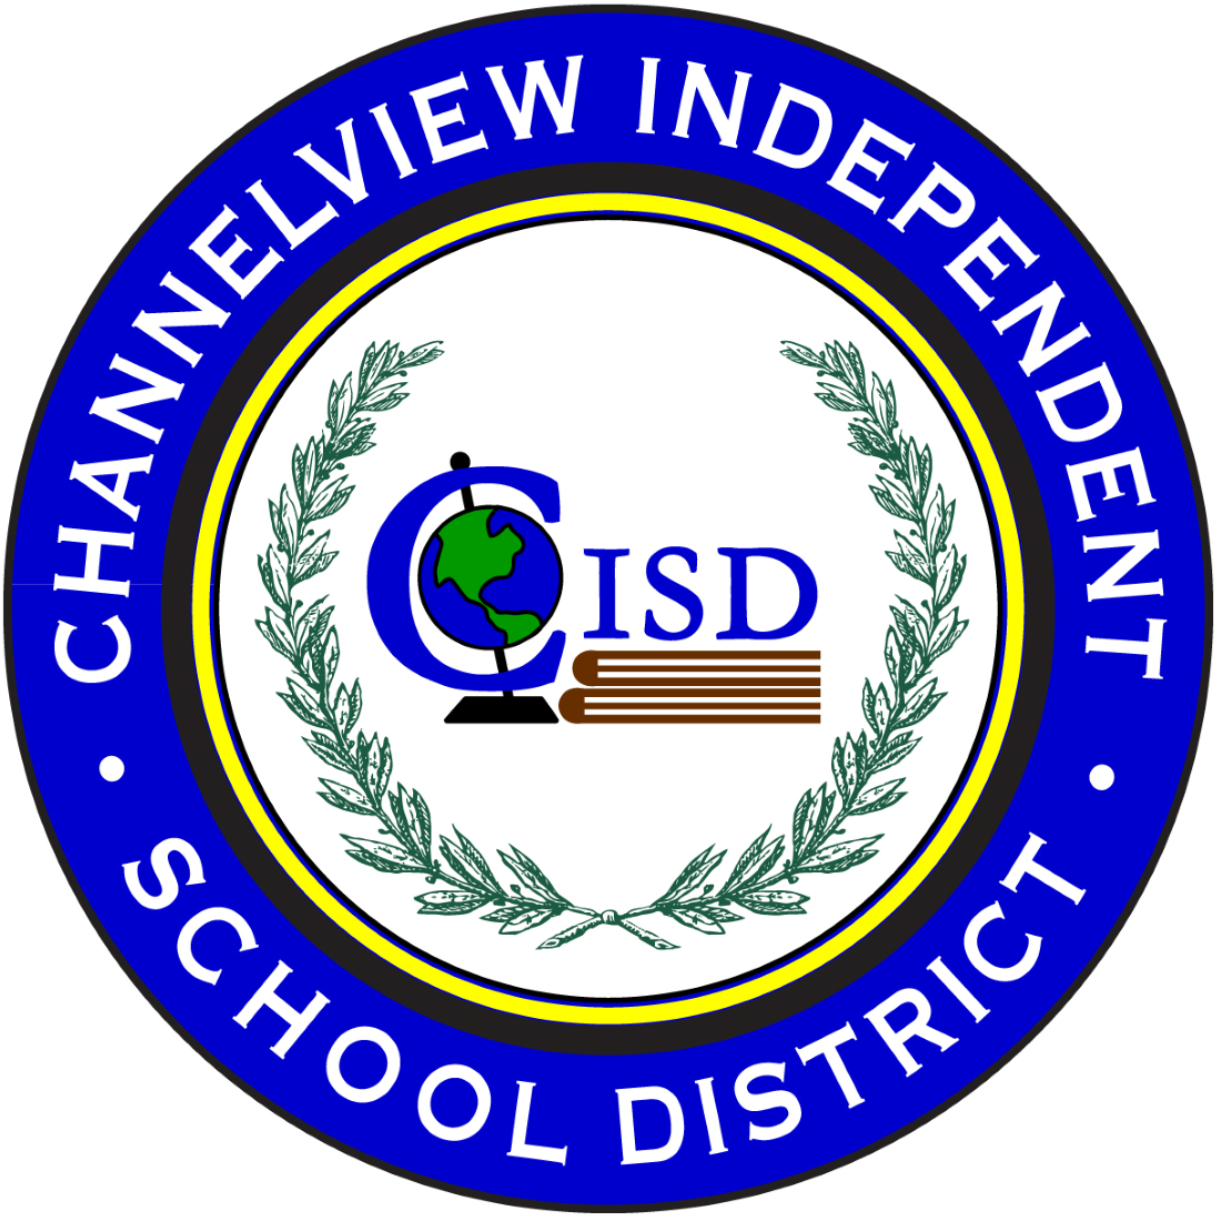 Channelview ISD LOGO